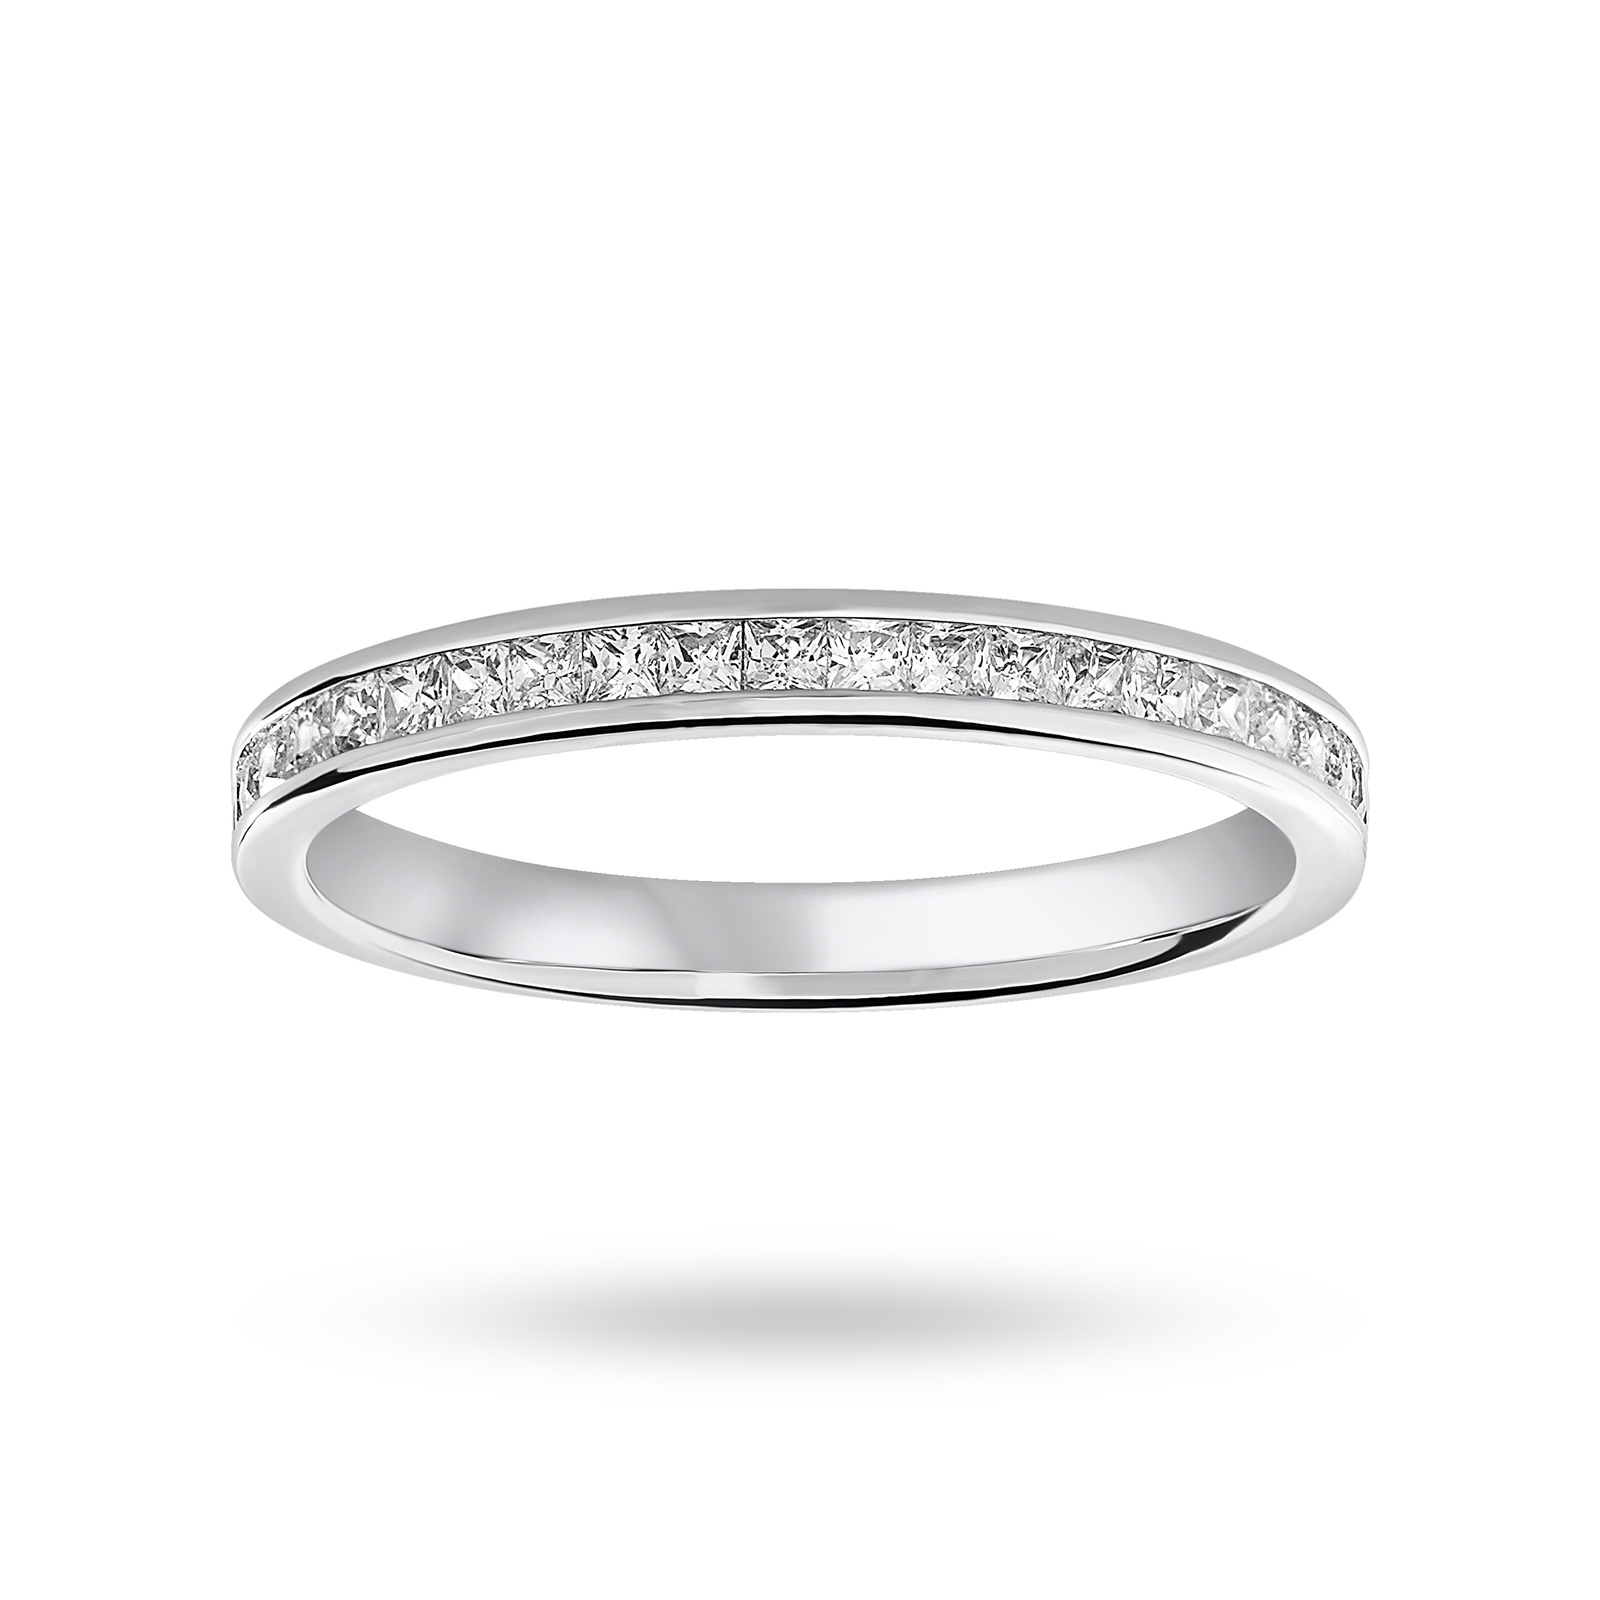 Platinum 0.33cttw Diamond Half Eternity Ring